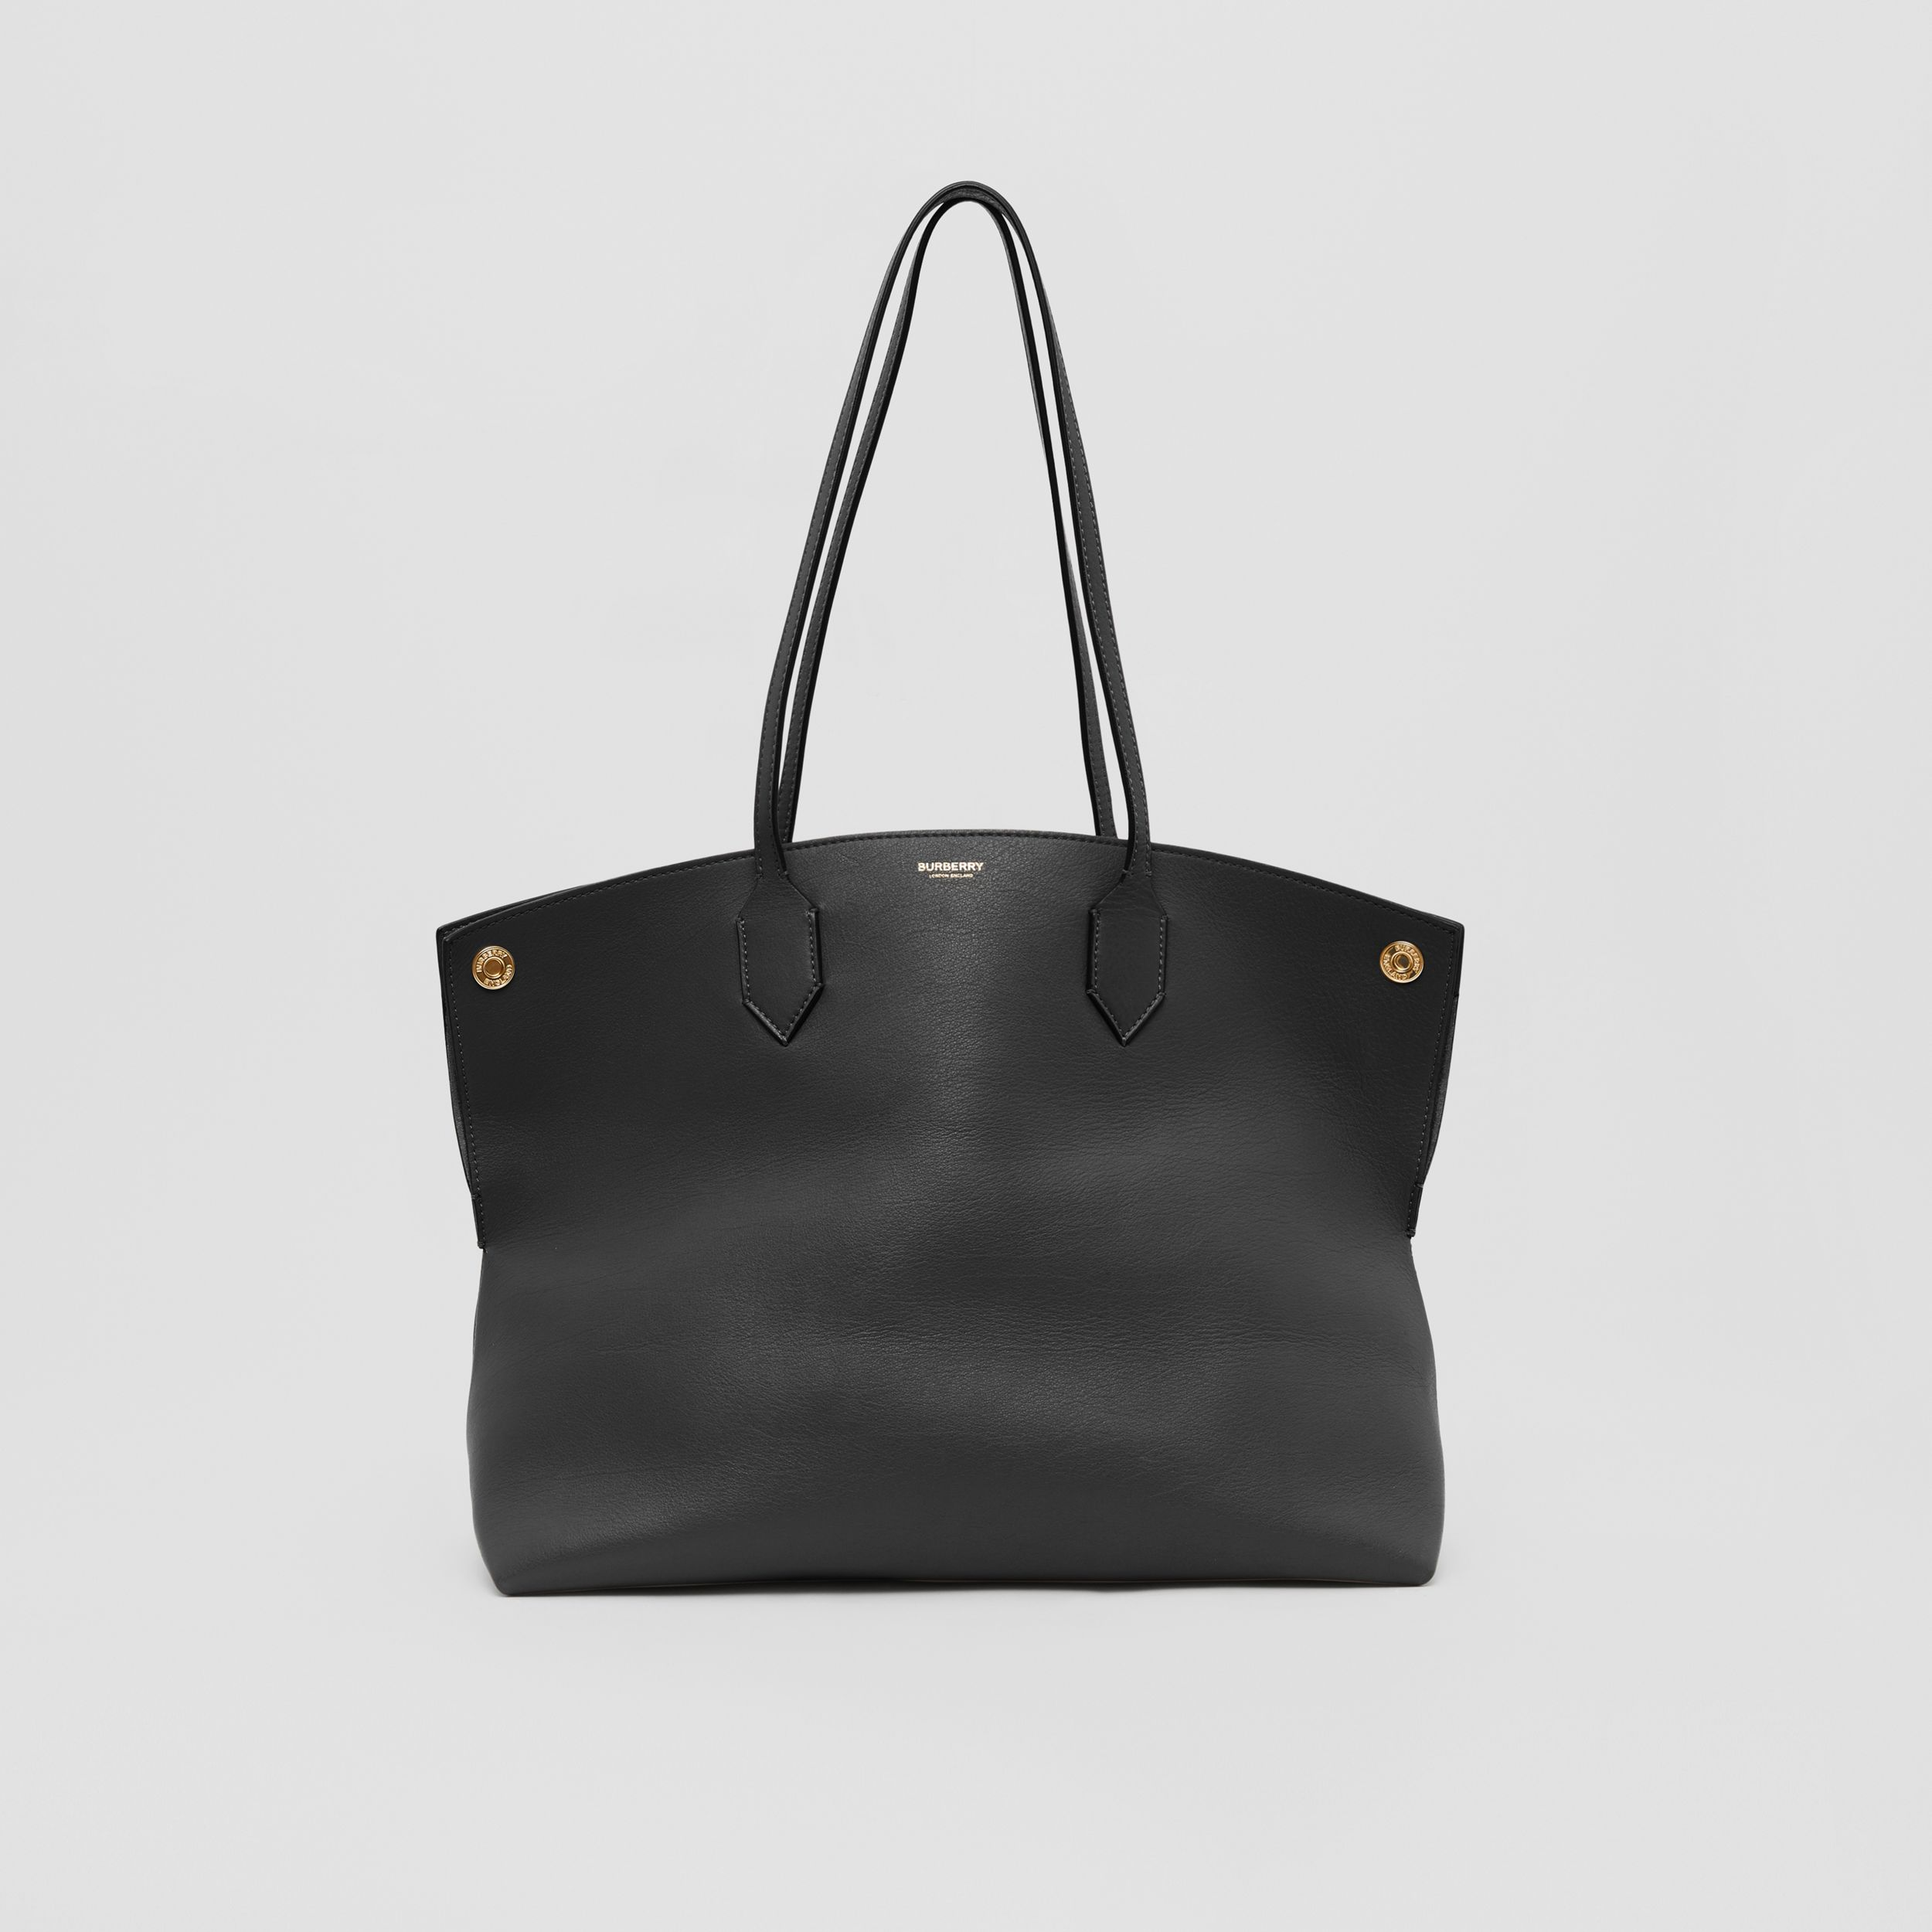 Medium Leather Society Tote in Black - Women | Burberry Canada - 1